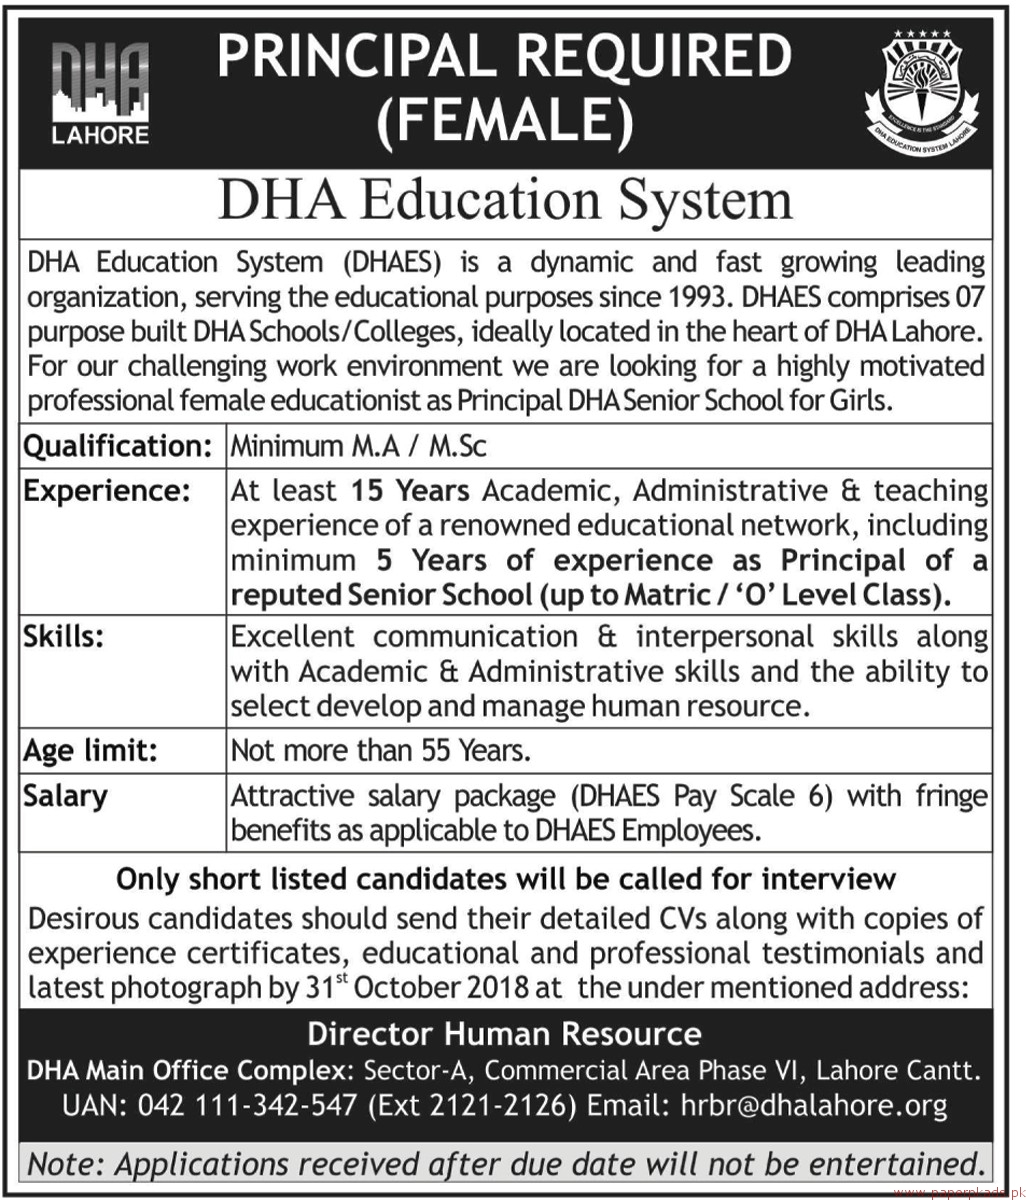 DHA Education System Jobs 2018 Latest